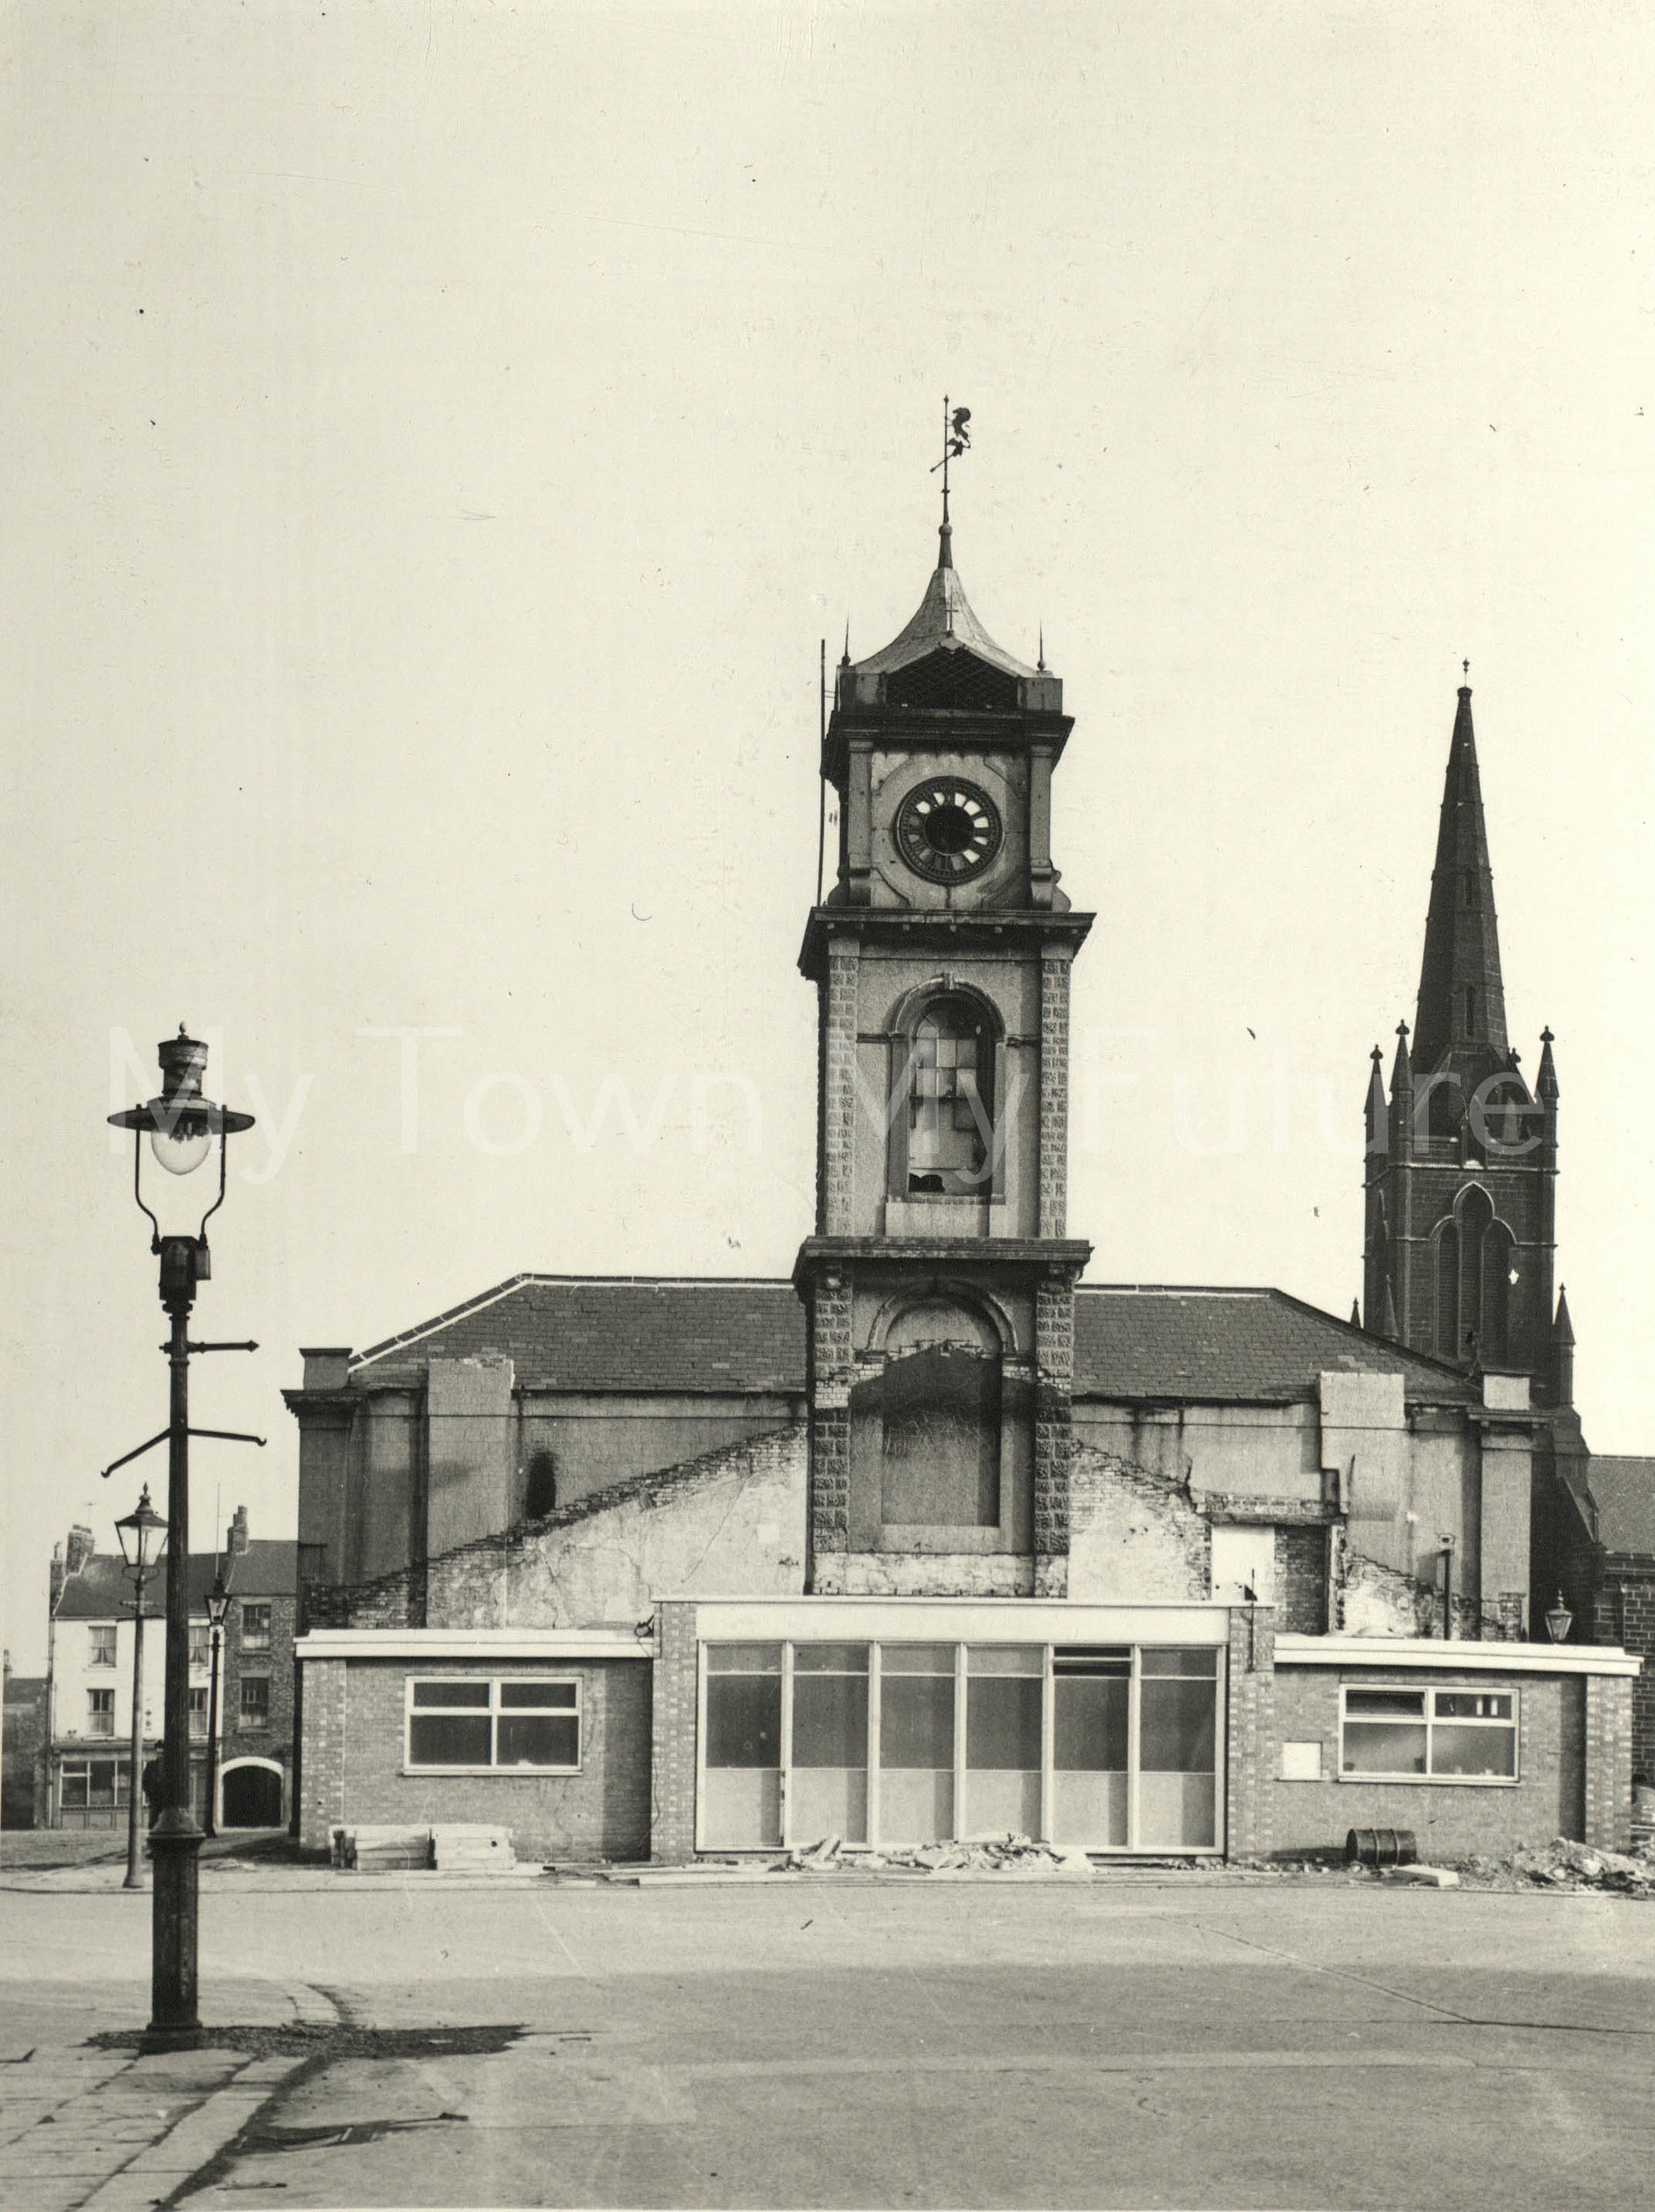 Old Town Hall (Building completed September 1846) before alterations, March 1962, Borough Engineers Department